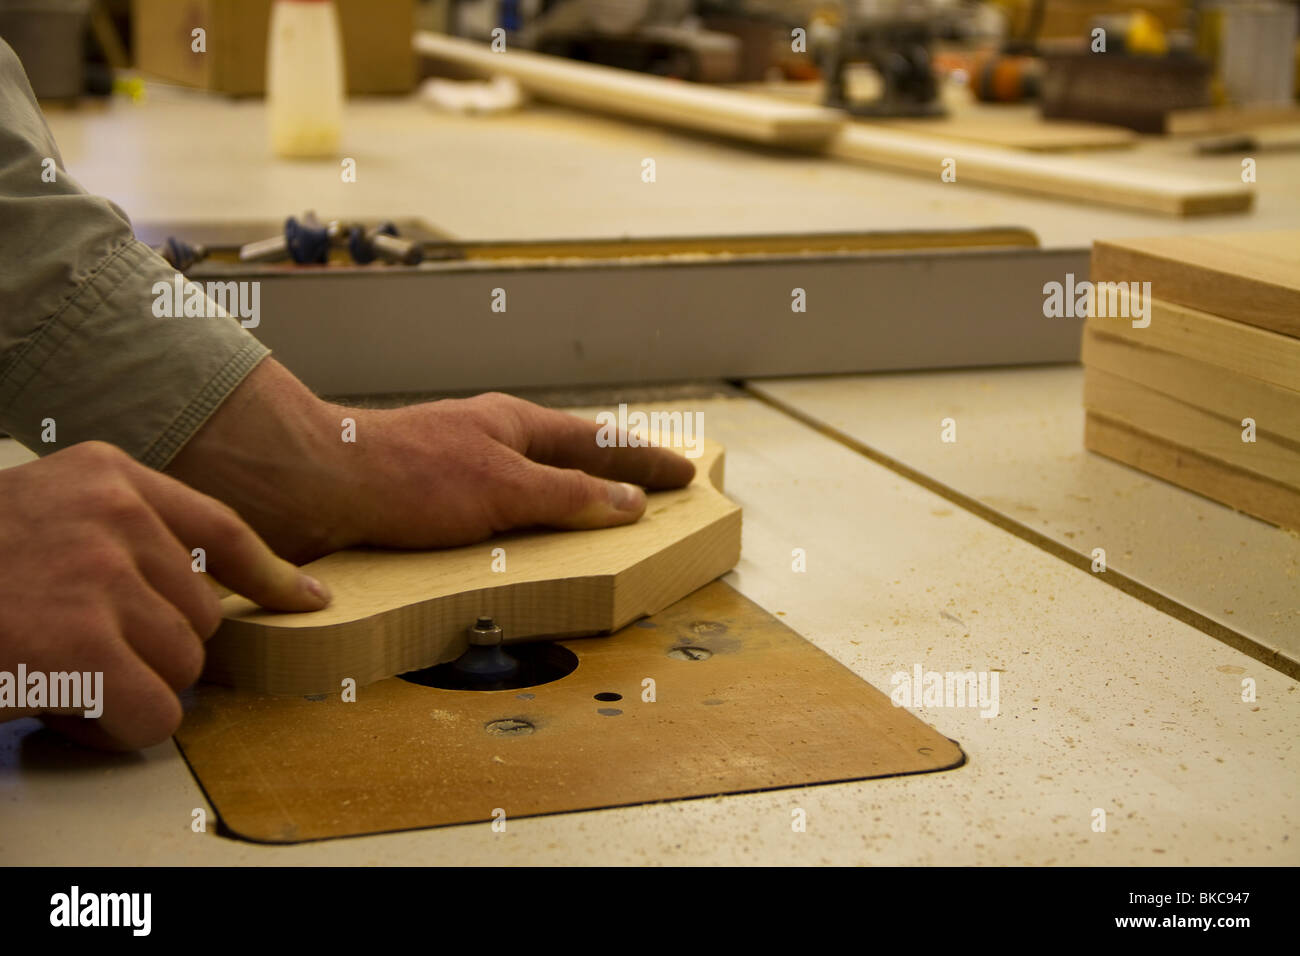 hardwood being routed - Stock Image